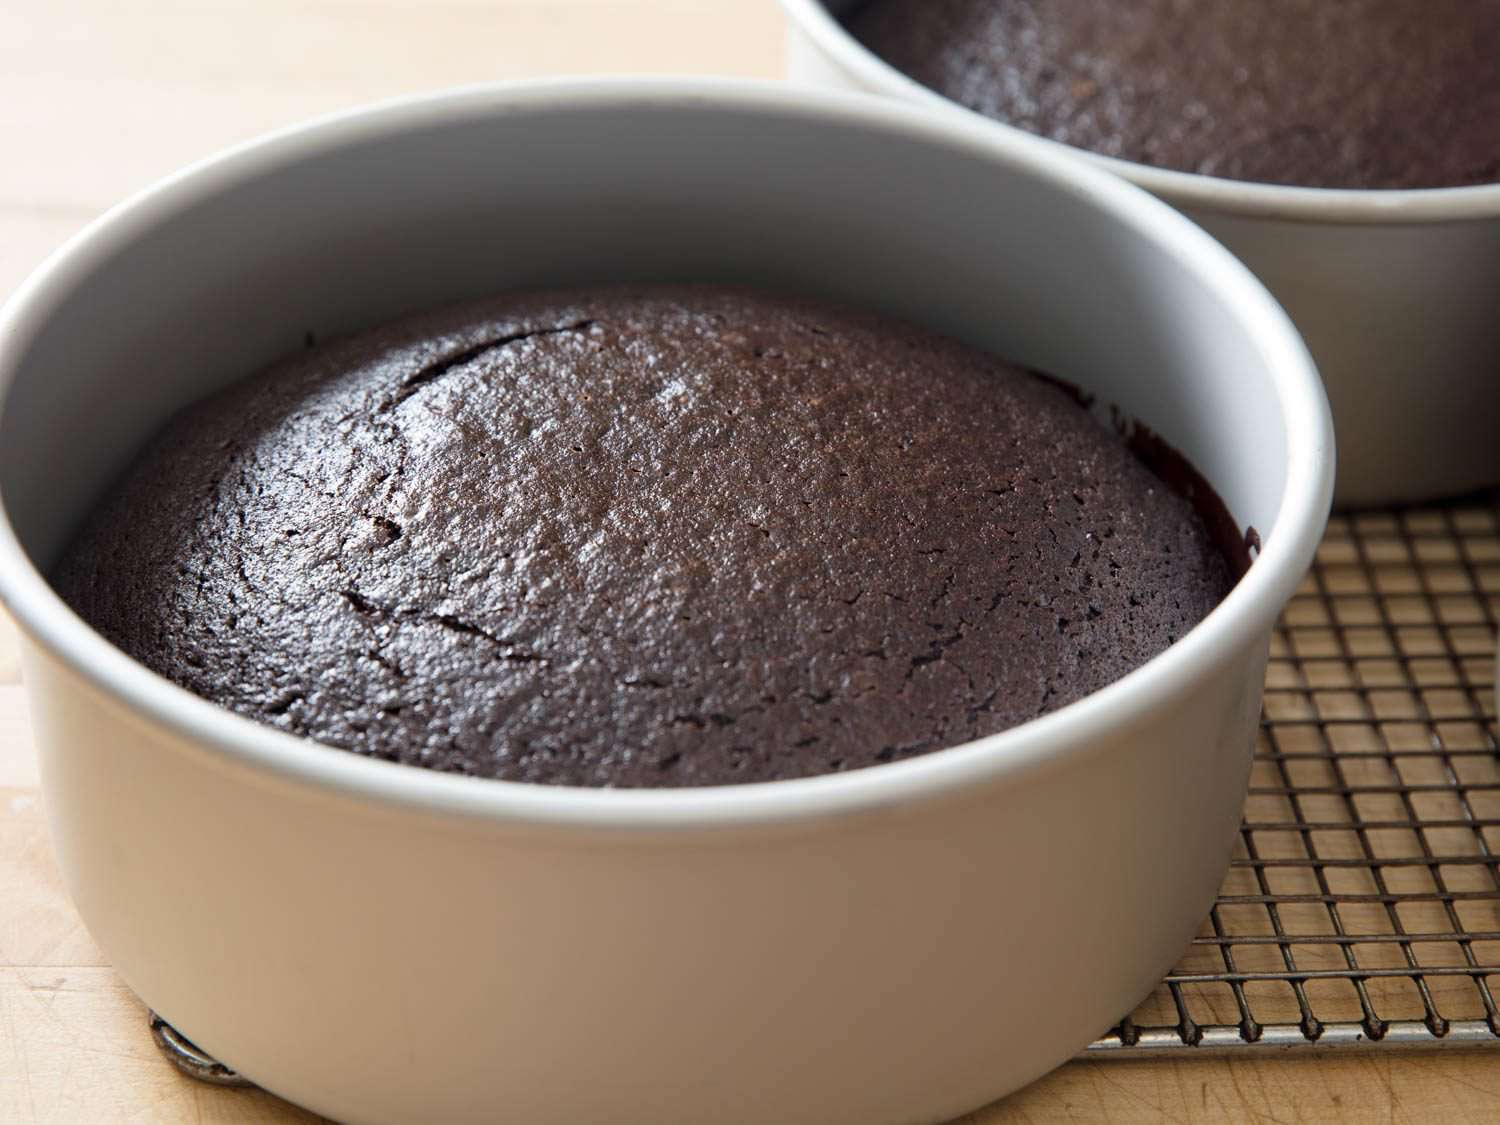 One baked layer of Devil's food cake still in cake pan on cooling rack, with second layer behind it.